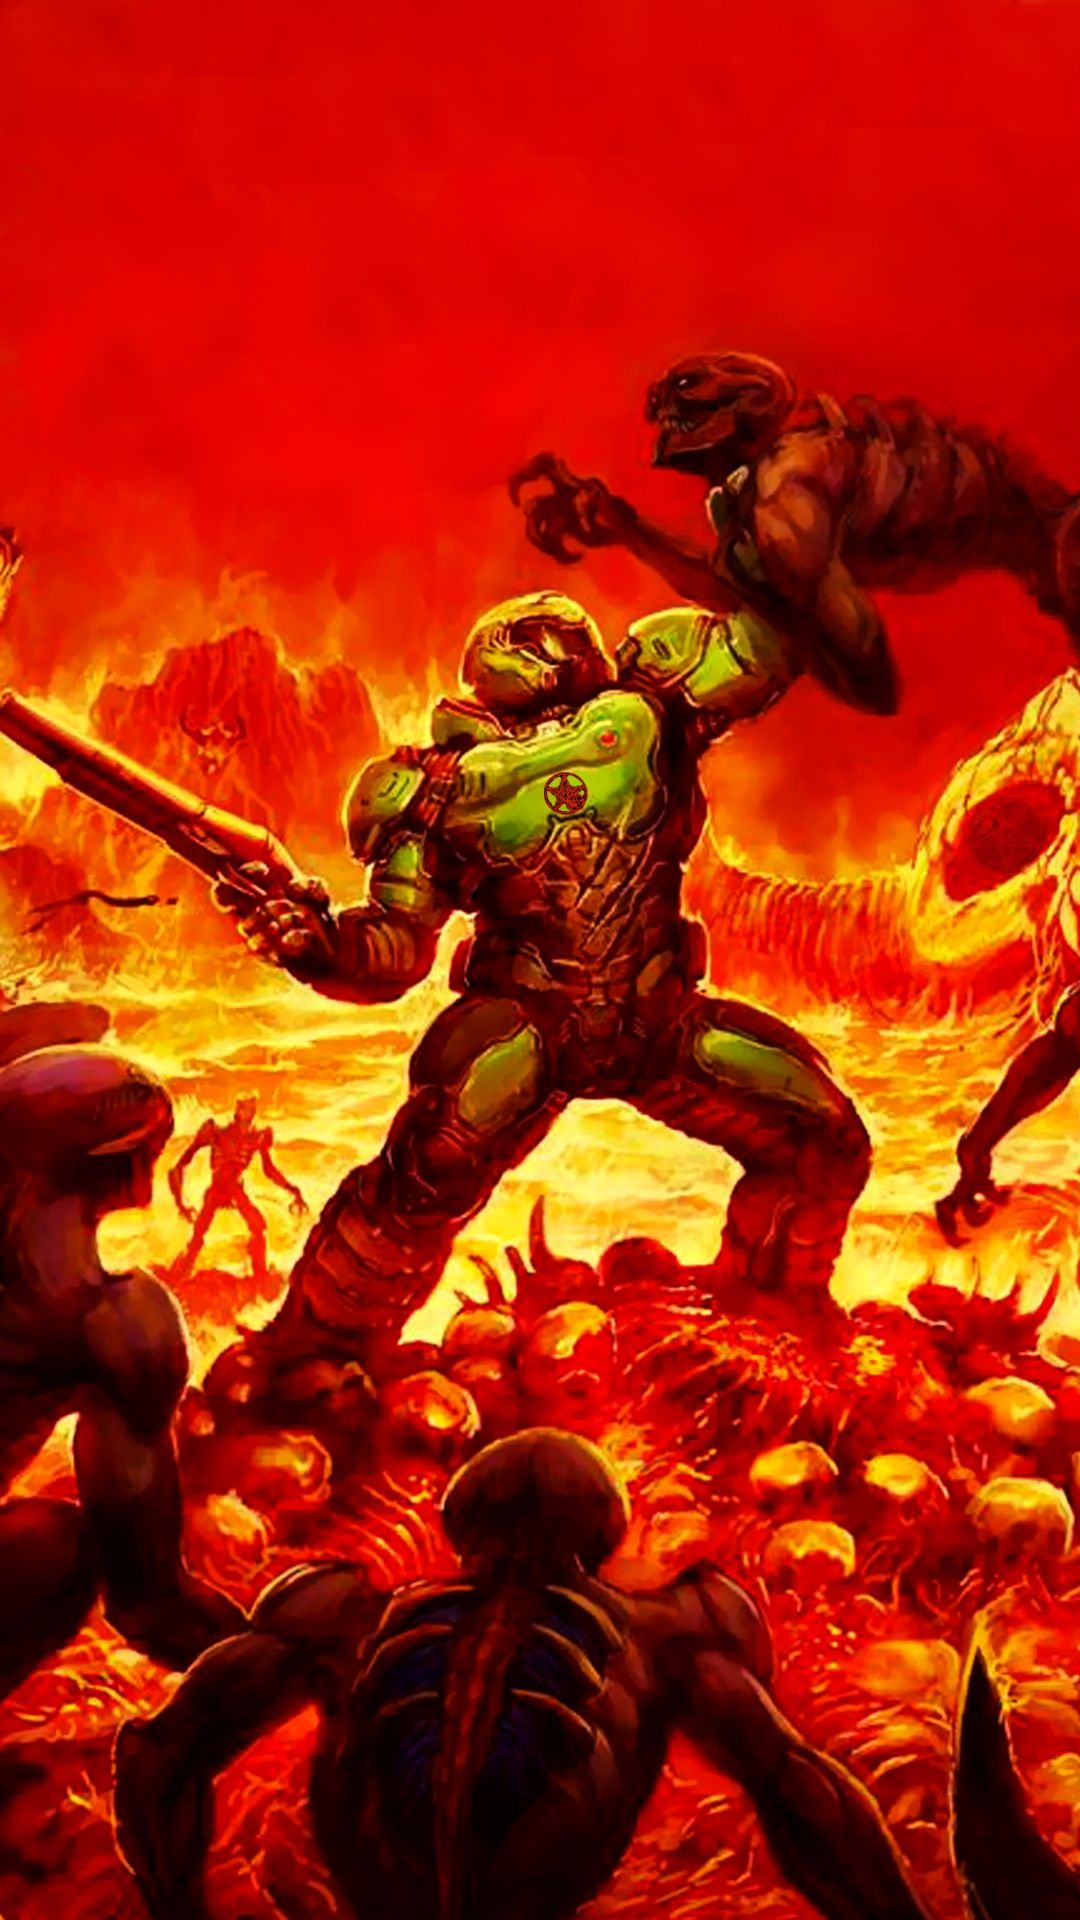 DOOM WALLPAPER Wallpaperize in 2020 Dark wallpaper